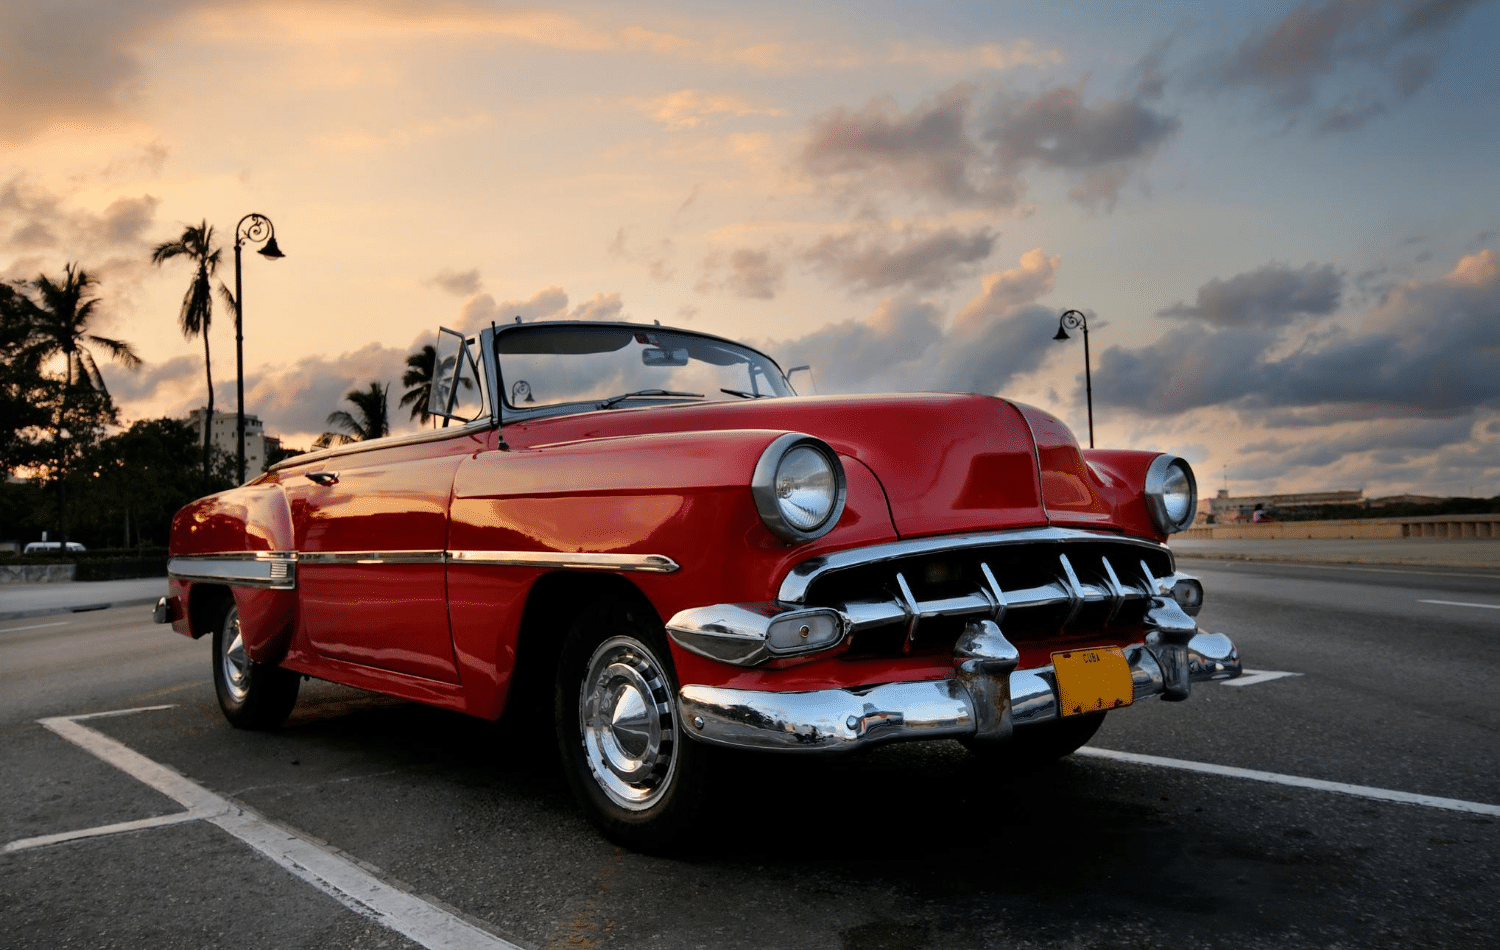 Common Problems With Vintage Cars